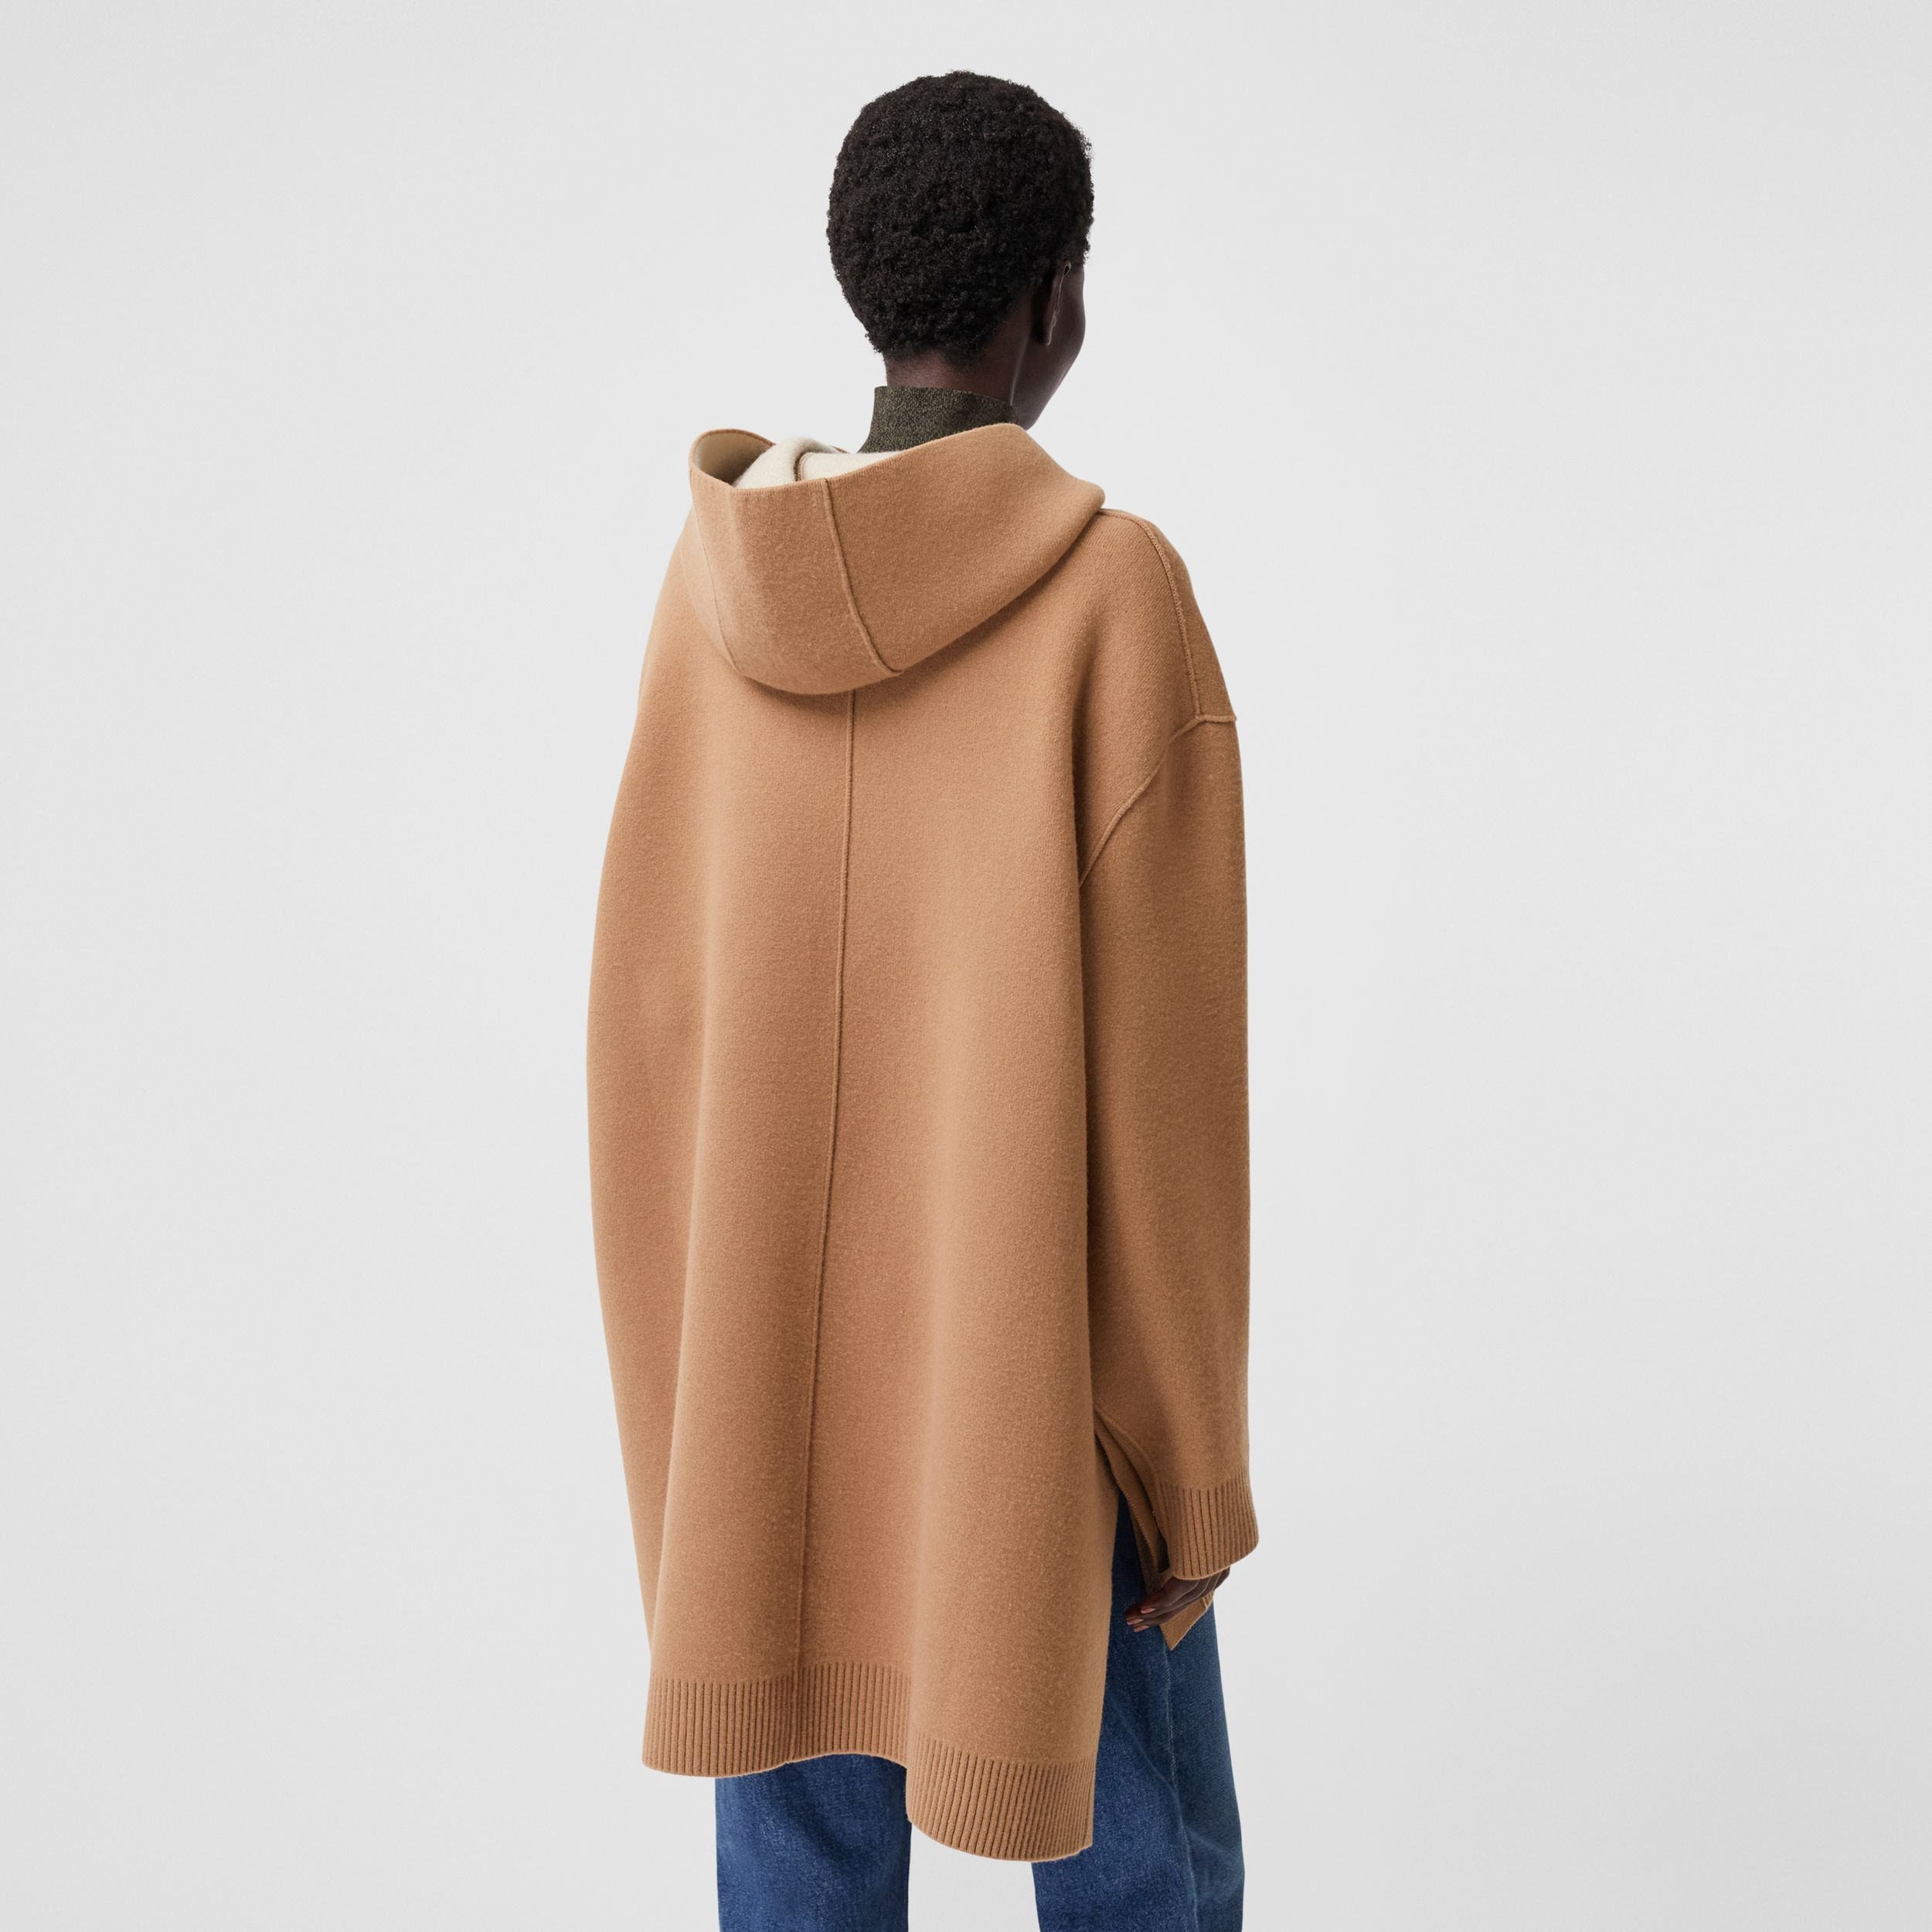 Double-faced Merino Wool Cashmere Blend Hoodie in Warm Camel - Women | Burberry - 3